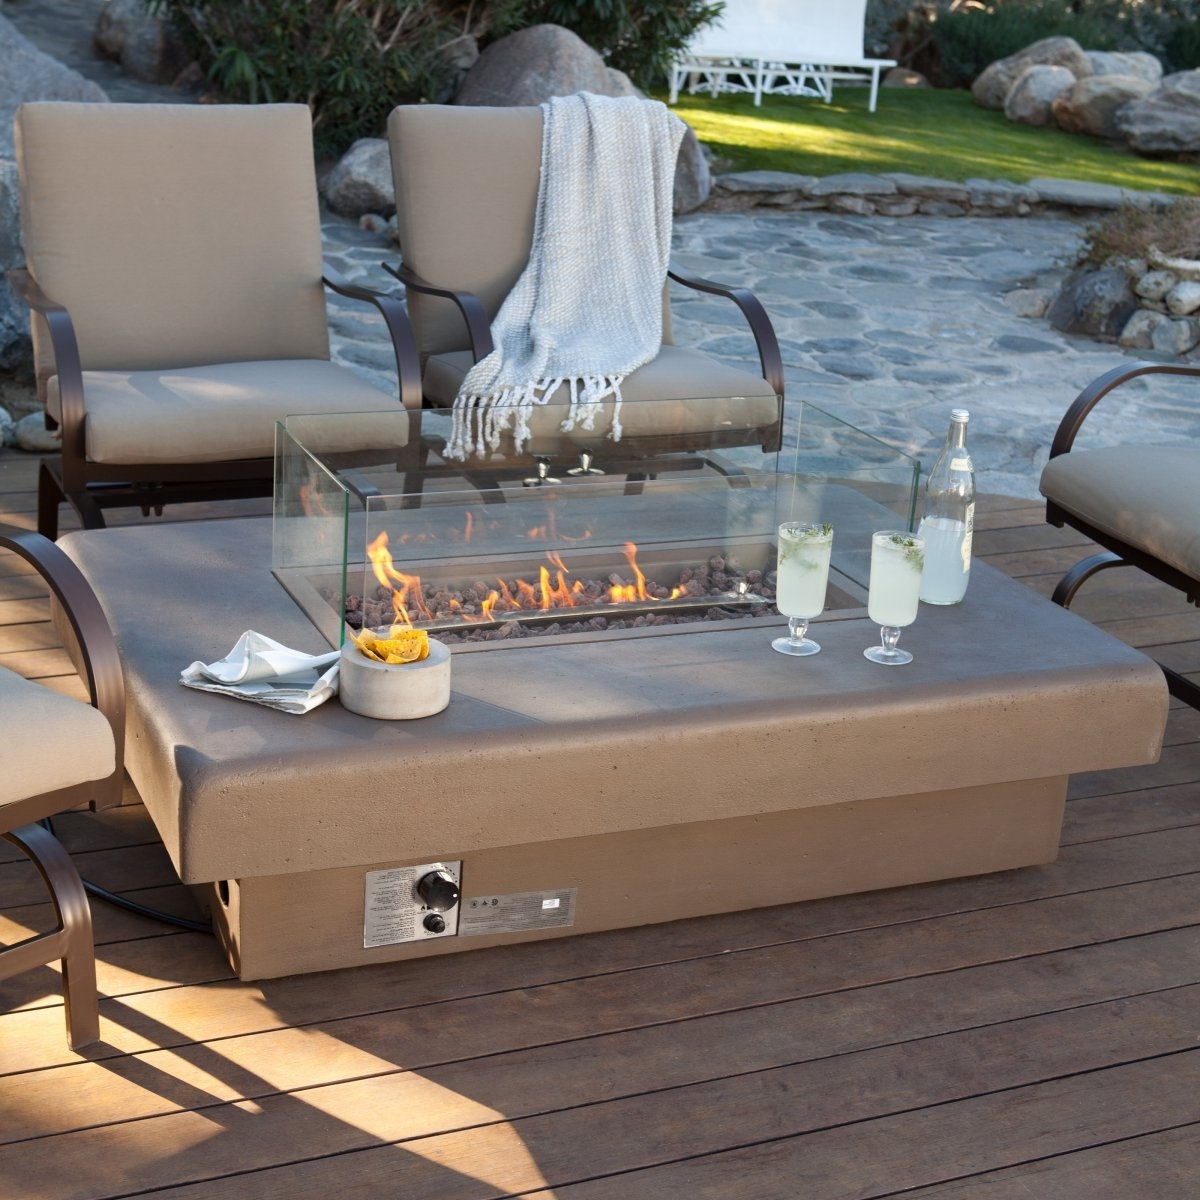 Latest Edmonton Patio Conversation Sets In Fire Pit Table For Outdoor Area — The New Way Home Decor (View 15 of 20)